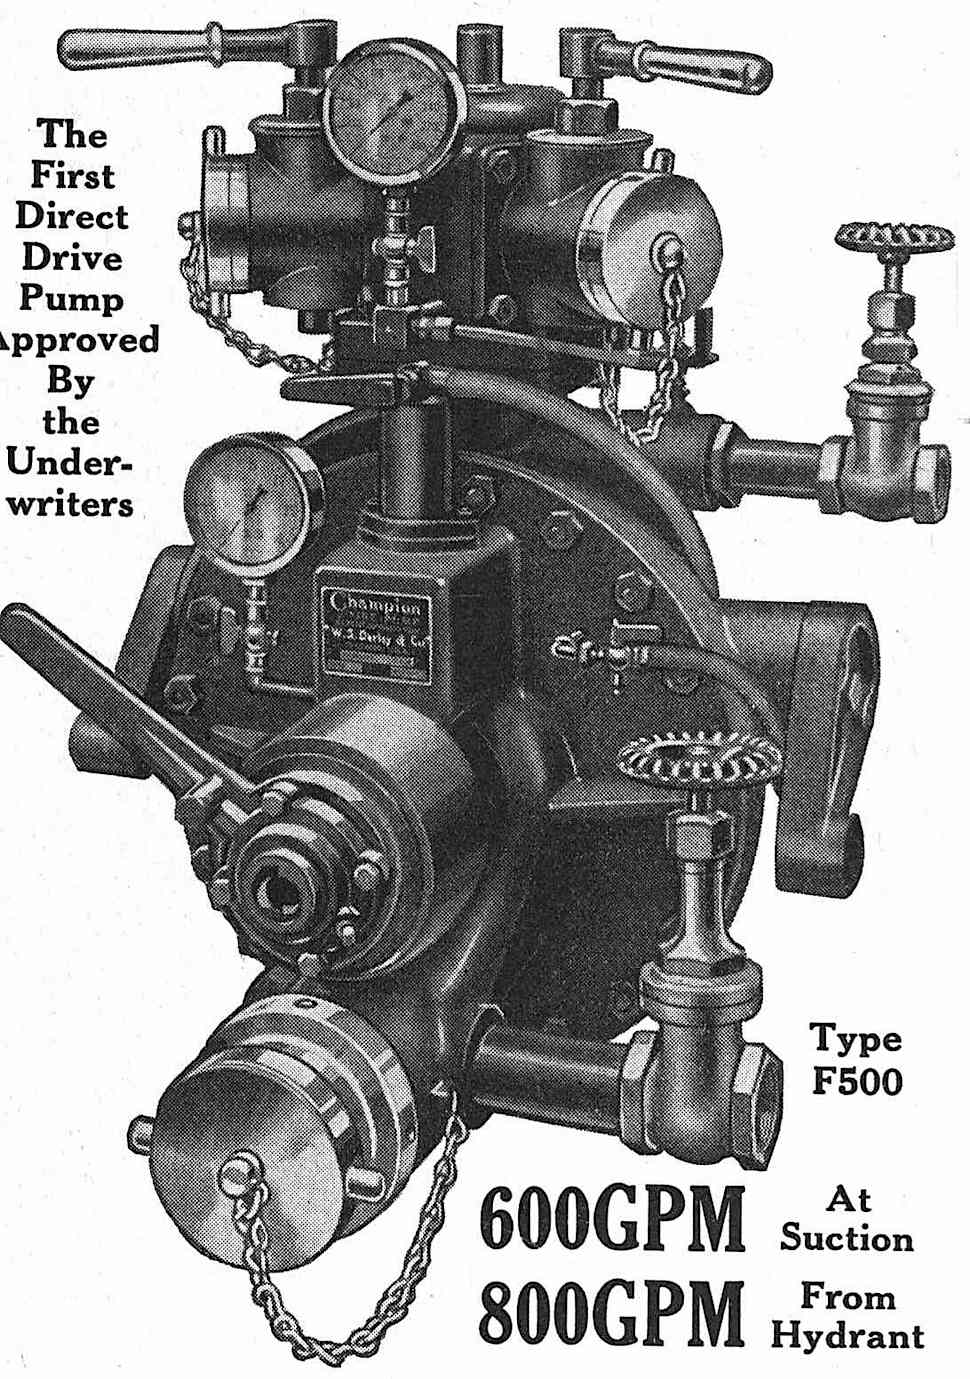 a 1939 direct drive hydrant pump illustrated